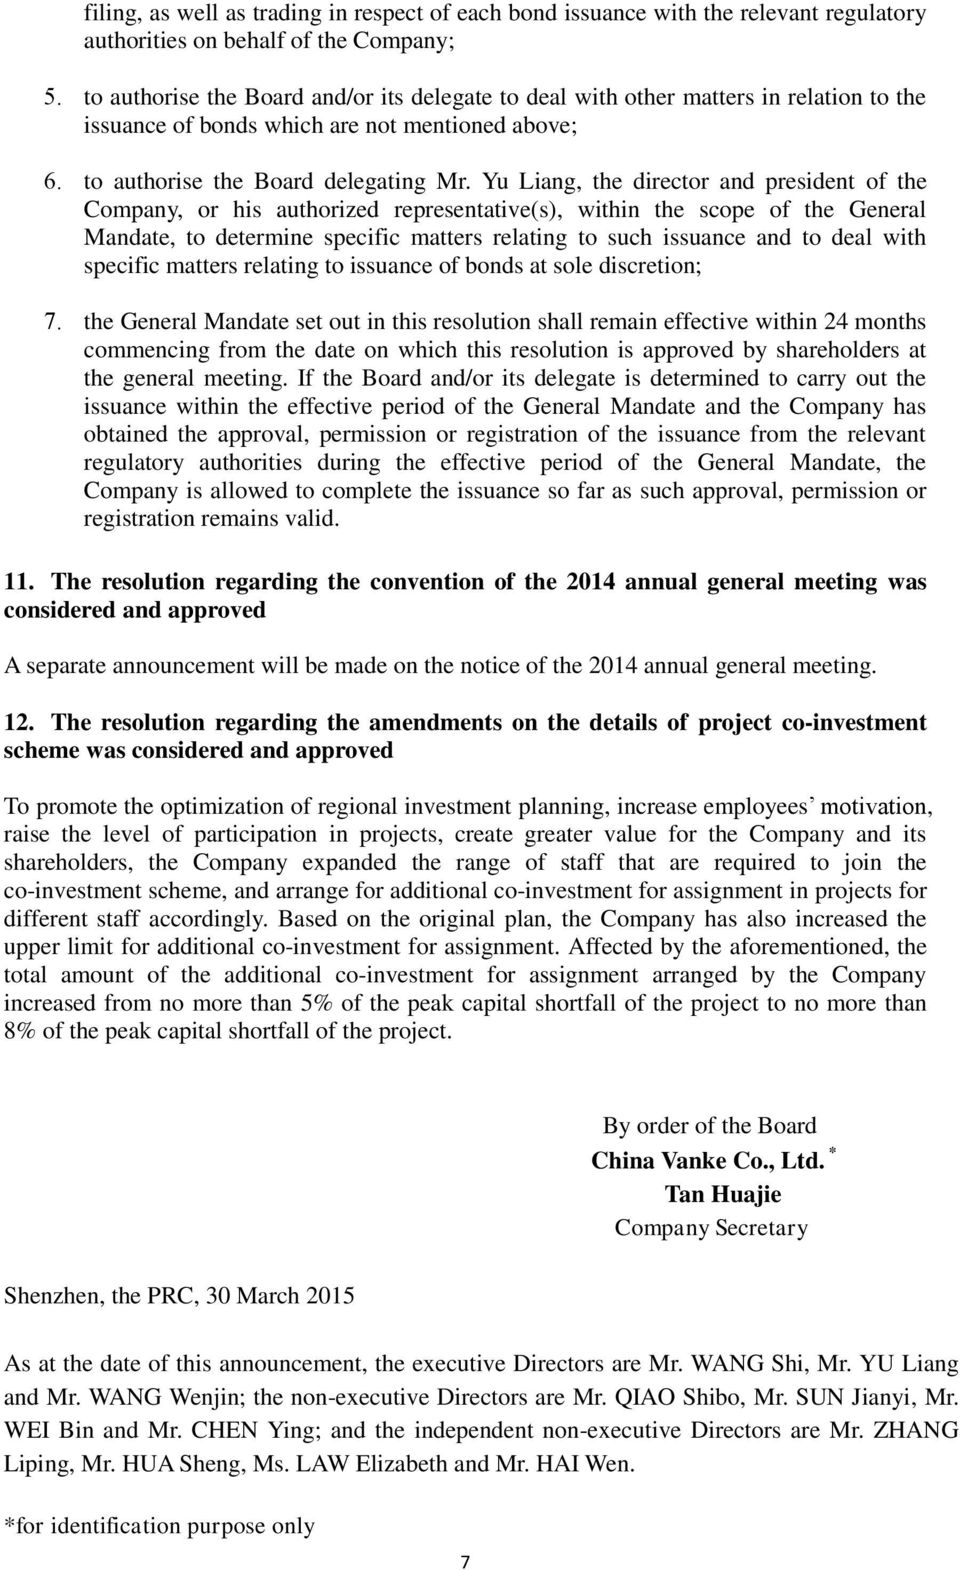 Yu Liang, the director and president of the Company, or his authorized representative(s), within the scope of the General Mandate, to determine specific matters relating to such issuance and to deal